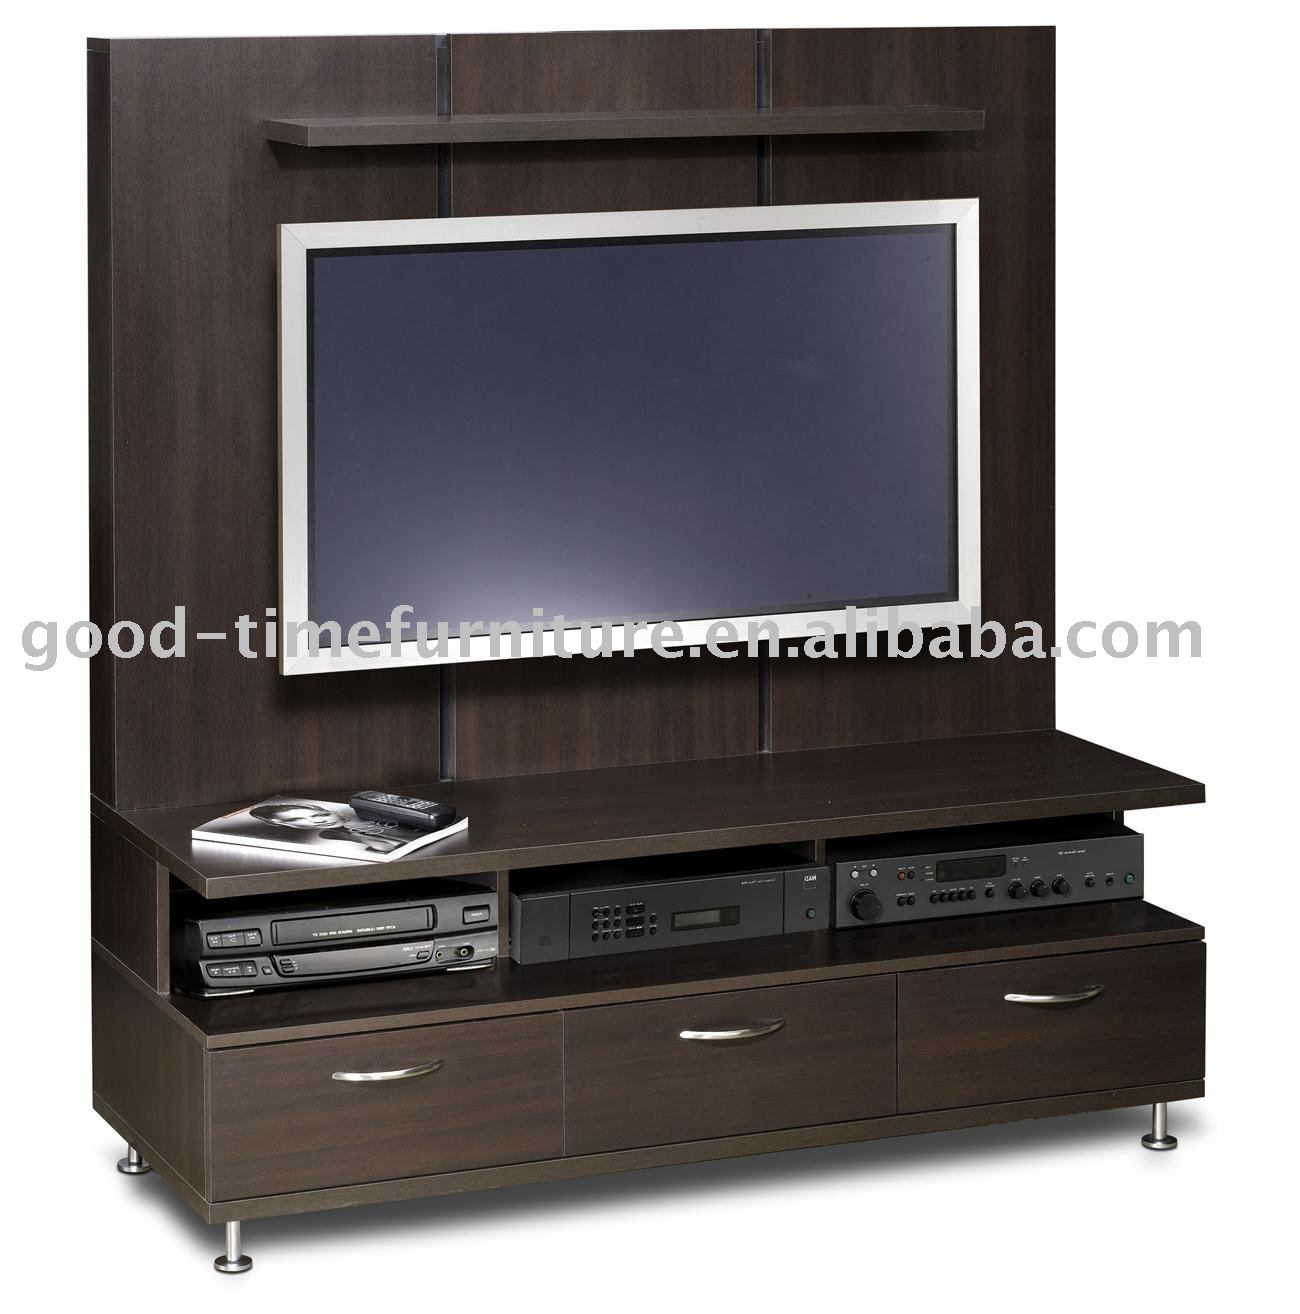 Wall Mounted Tv Cabinet Crowdbuild For